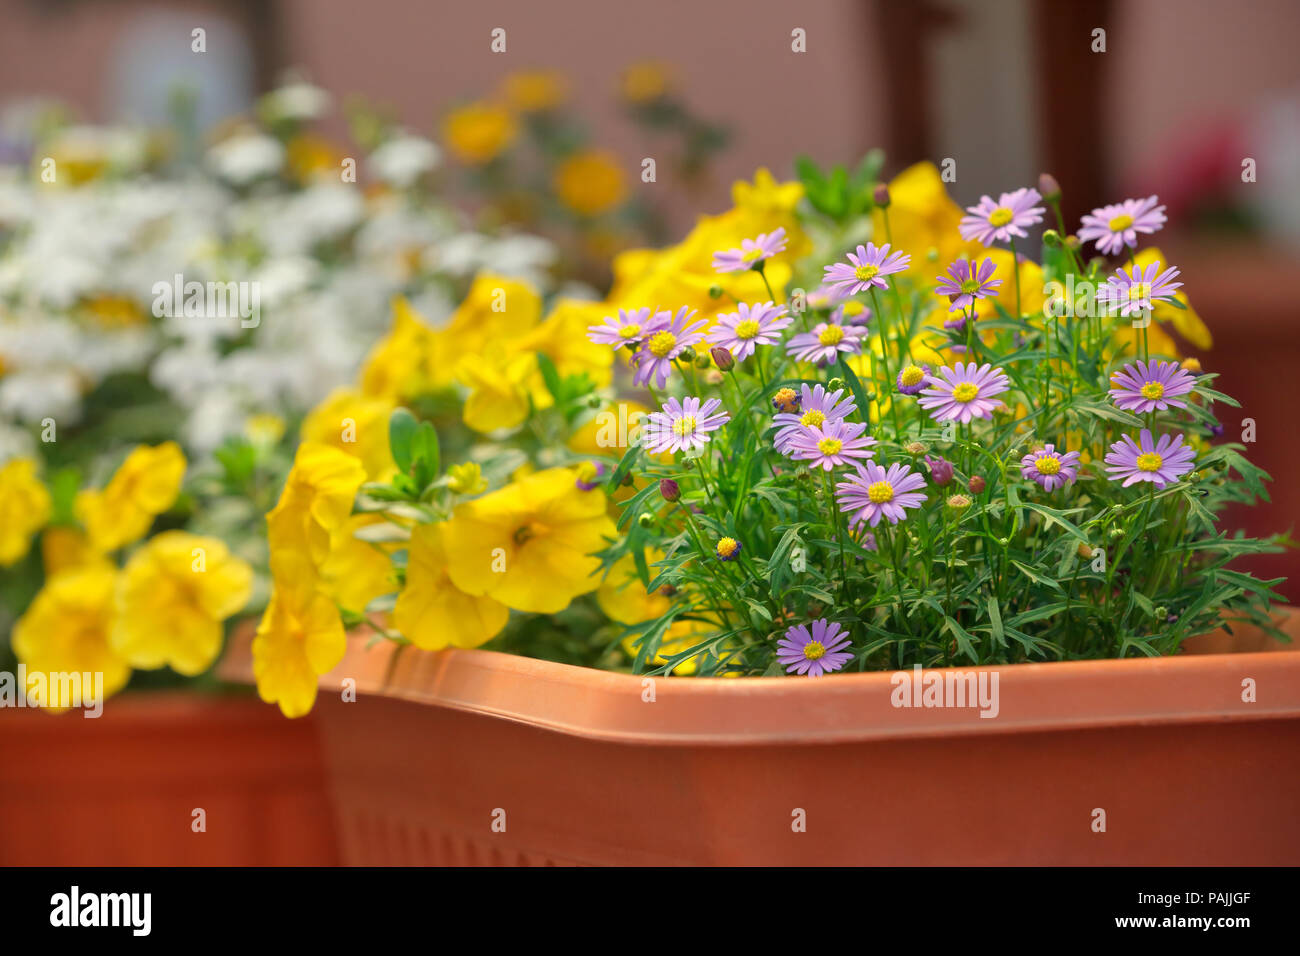 Summer blooming flowers in window box - Stock Image